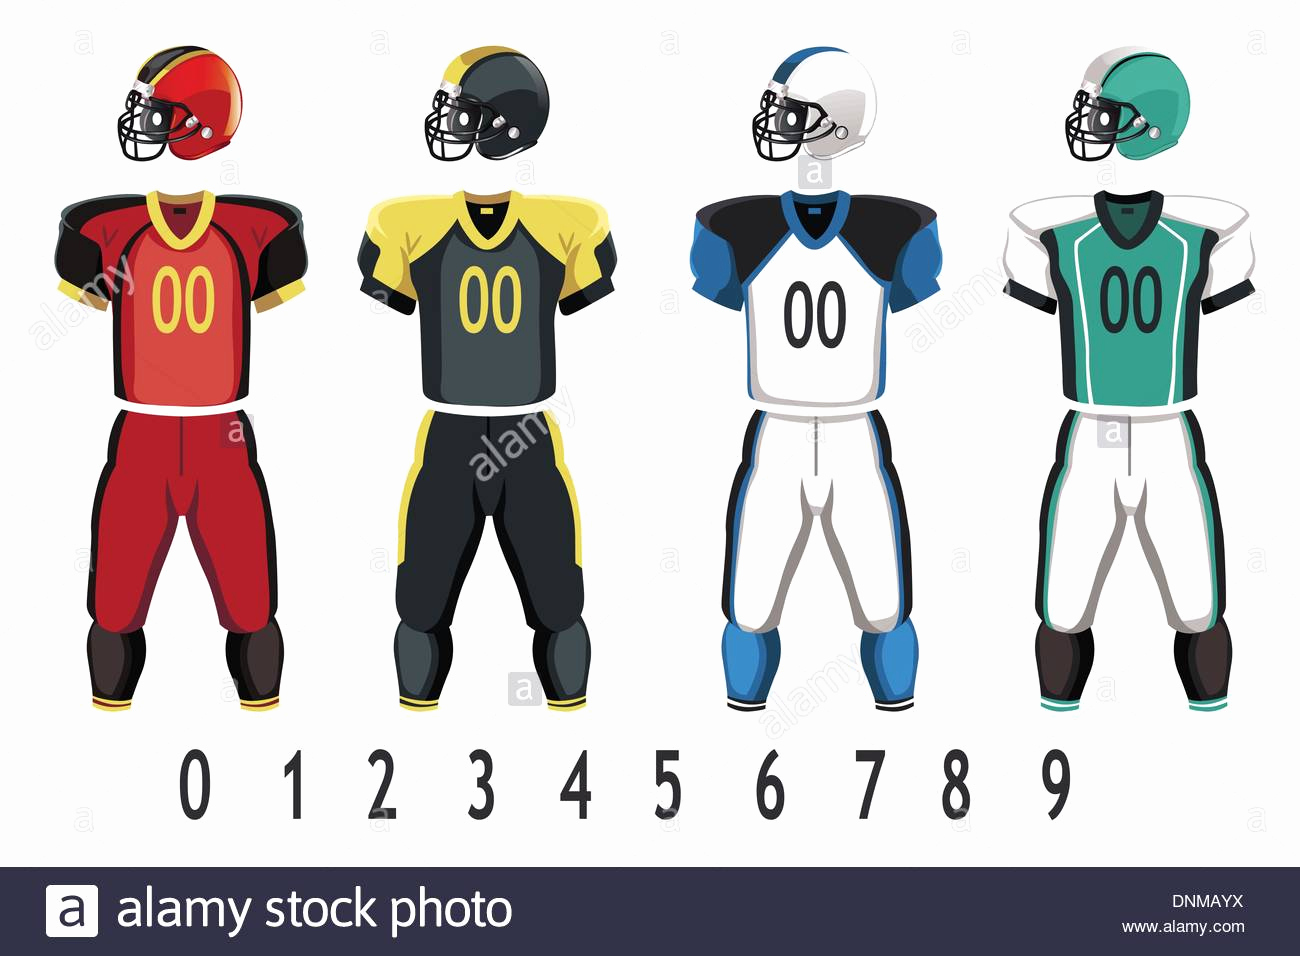 Football Uniform Template Vector